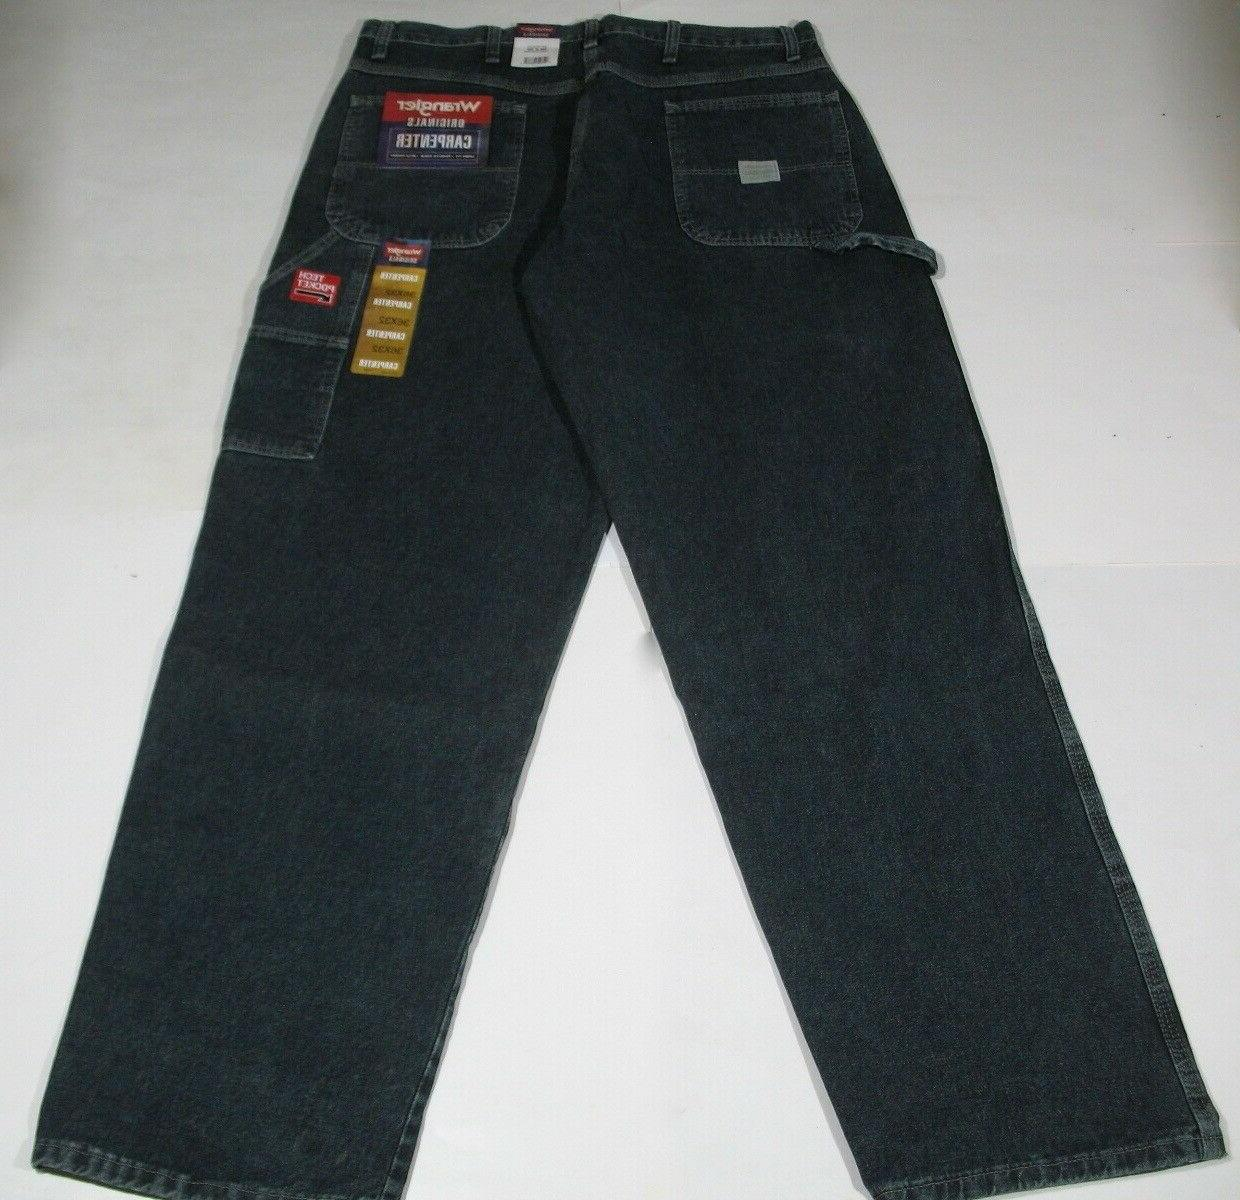 NEW Men's Wrangler Carpenter Jeans x 32 With Tags